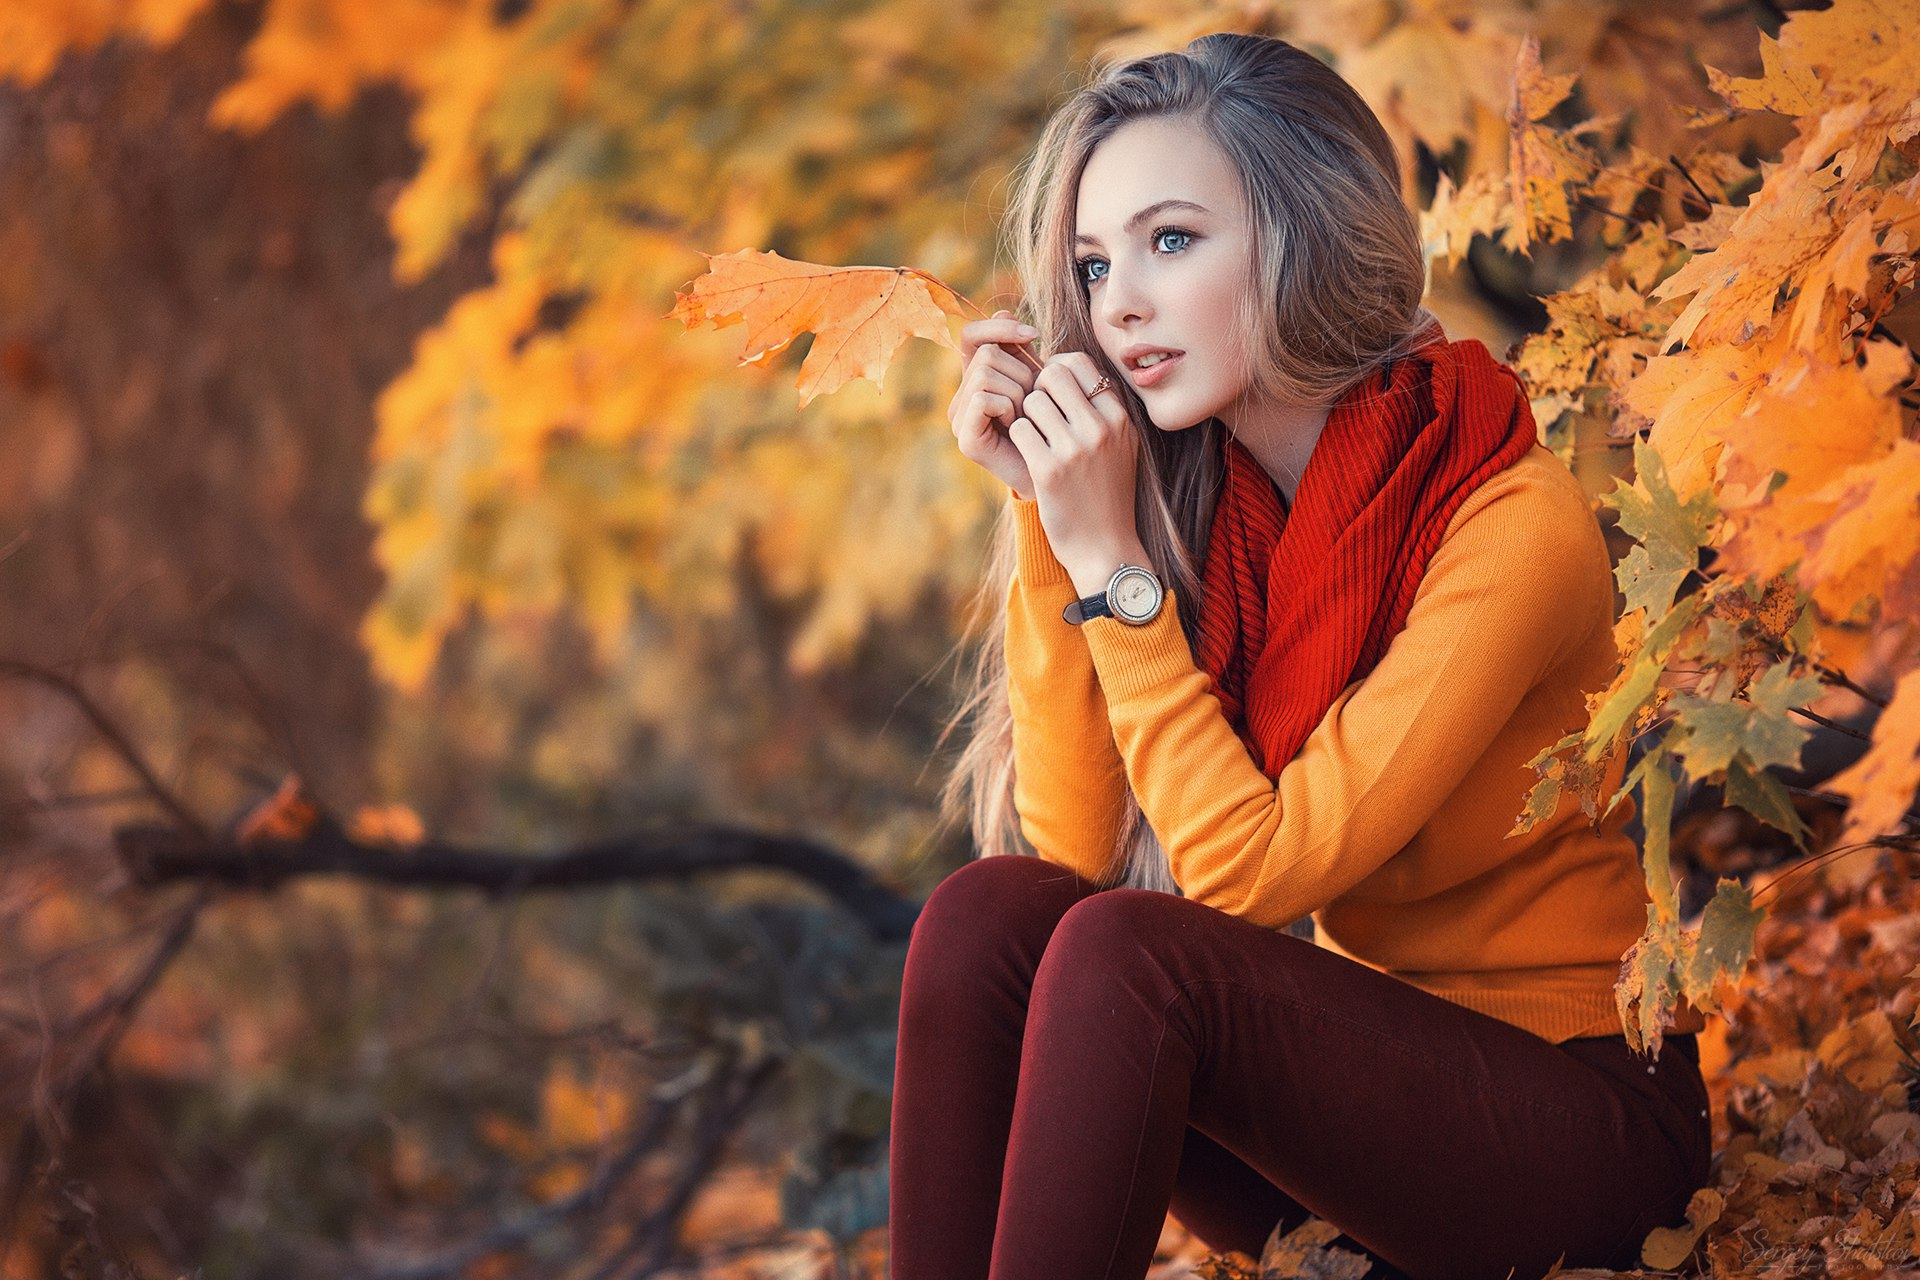 outdoors long hair yellow sweater looking away leaves women watch blonde branch fall model jeans sitting sweater forest